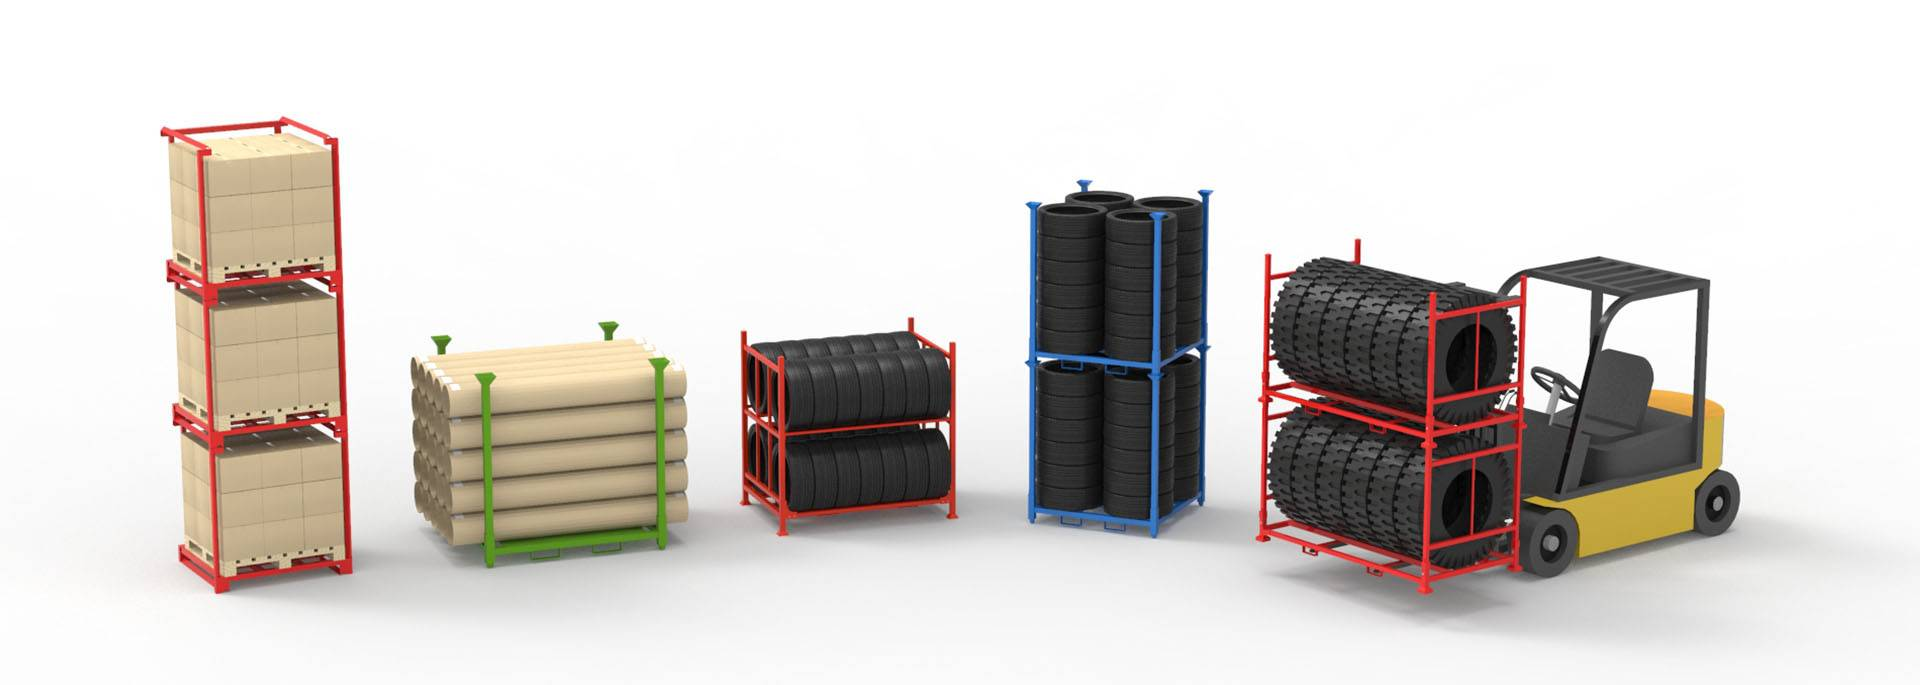 Stack Racks, Nestainers, Stillages, Stackable Pallets